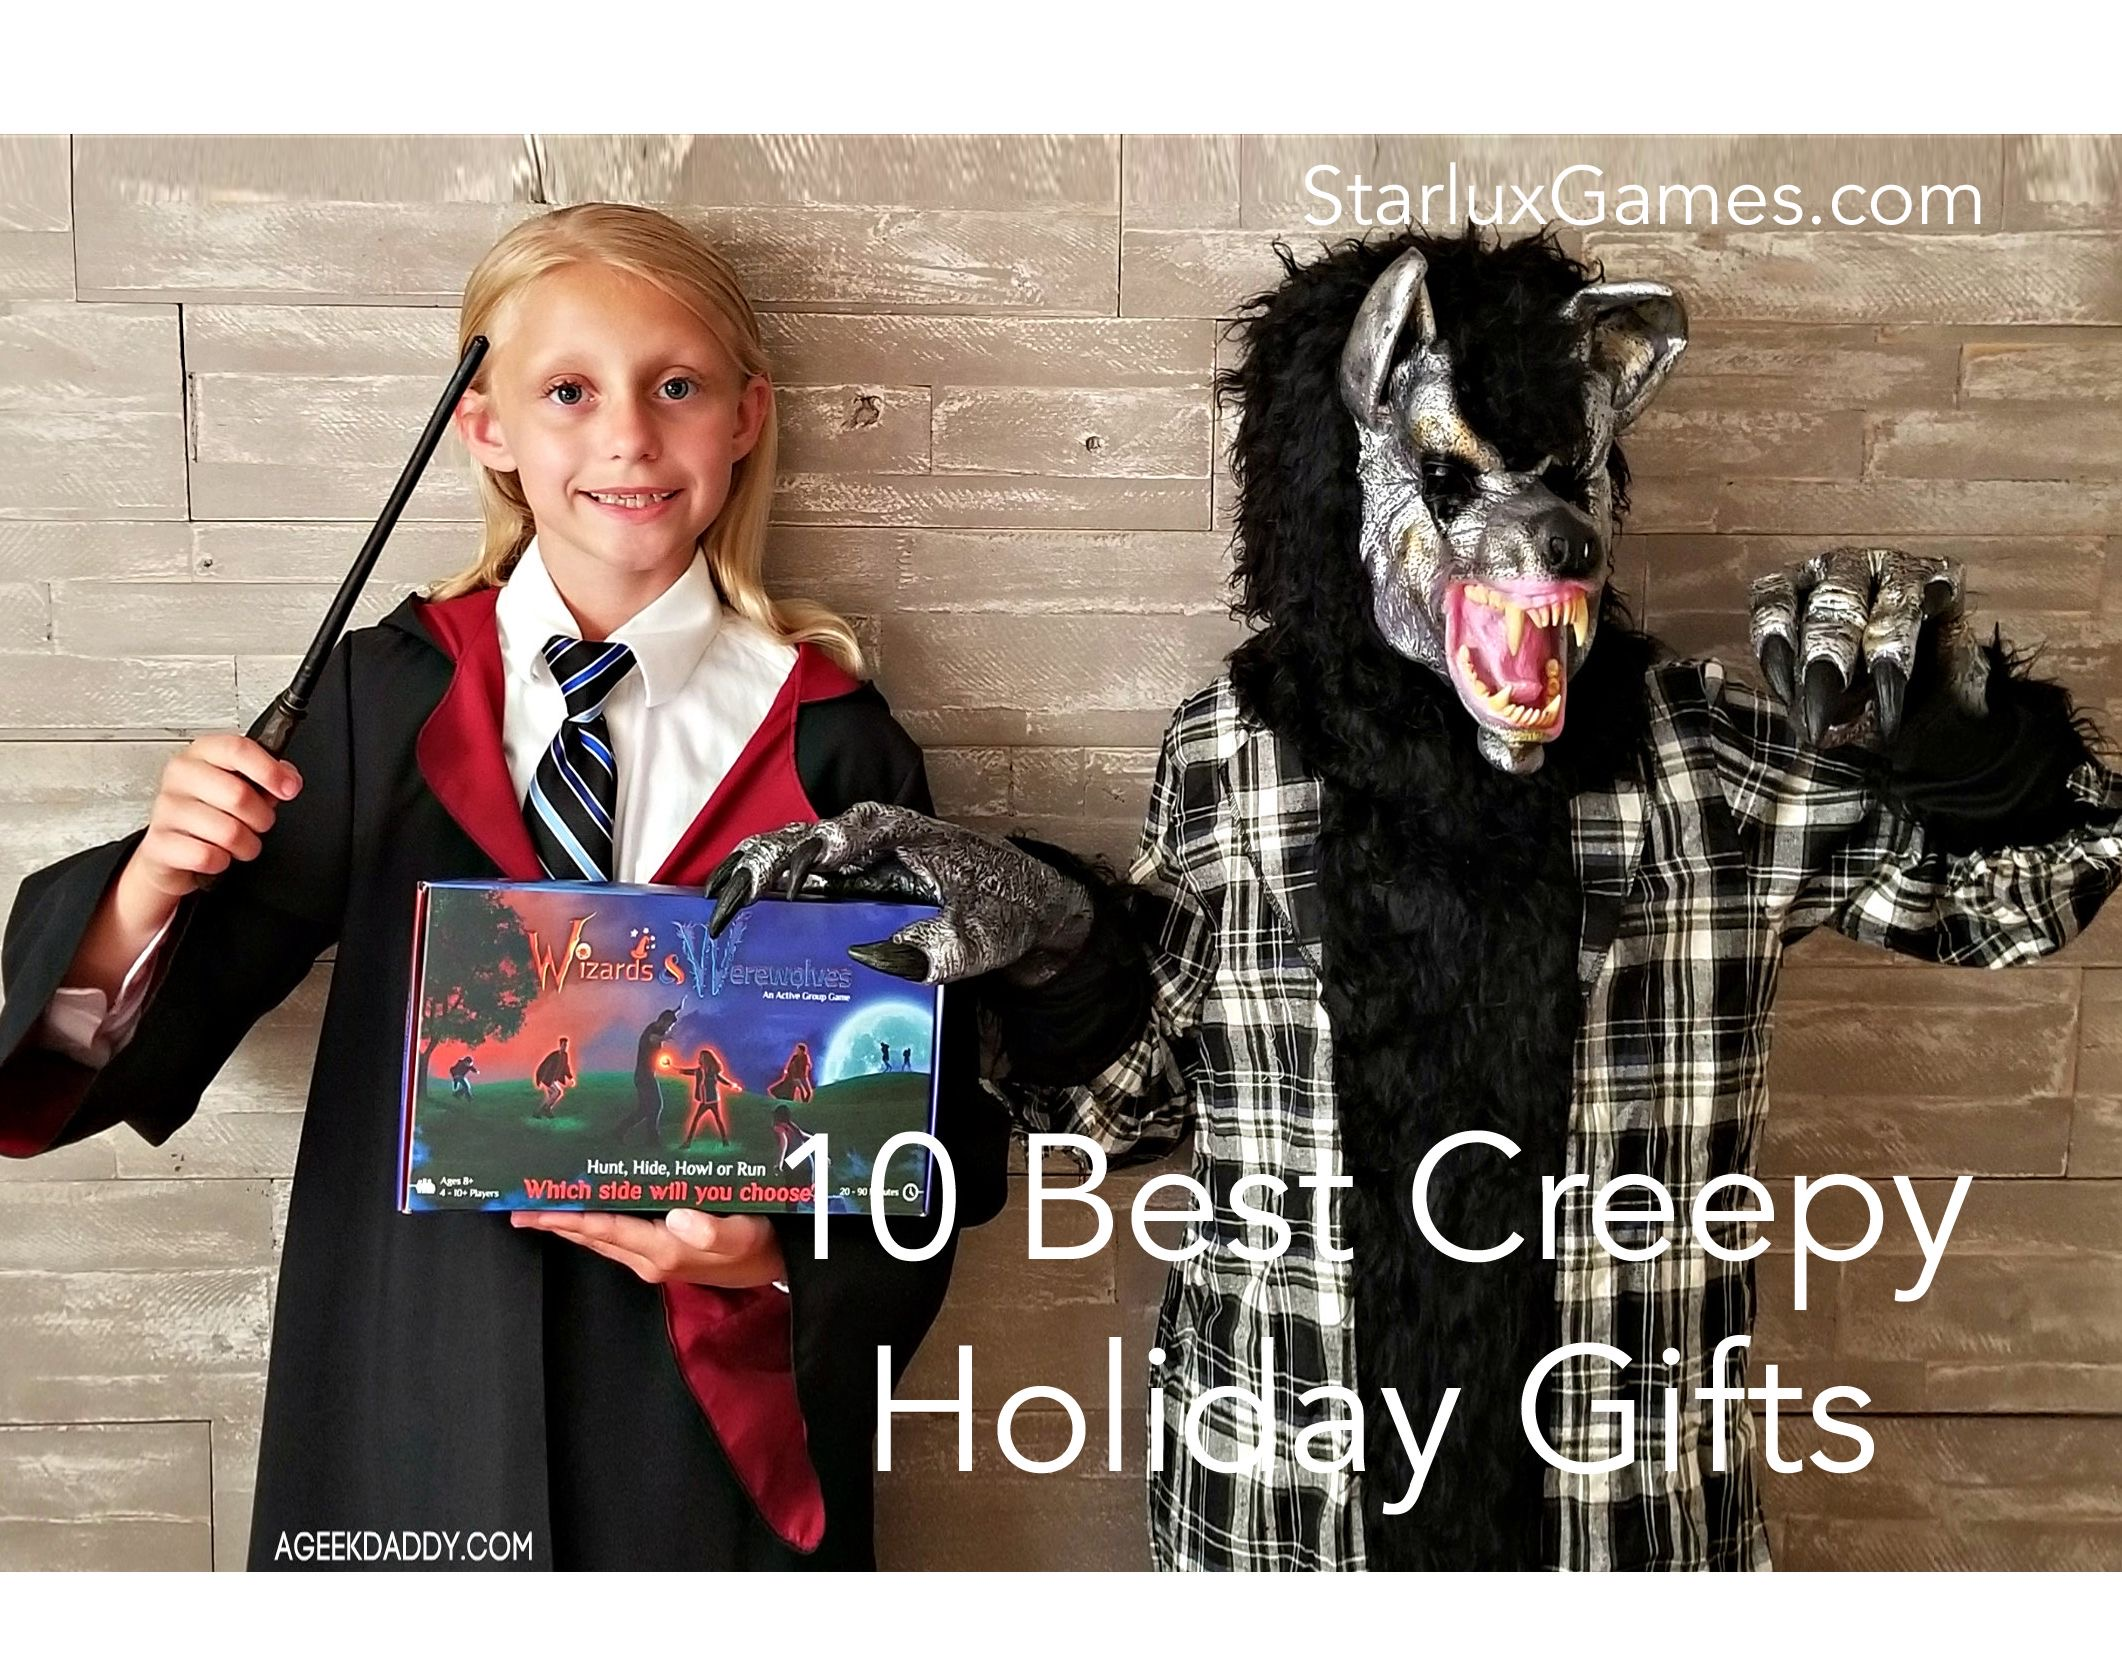 Two kids hold Wizards & Werewolves, one of the featured creepy holiday gifts.